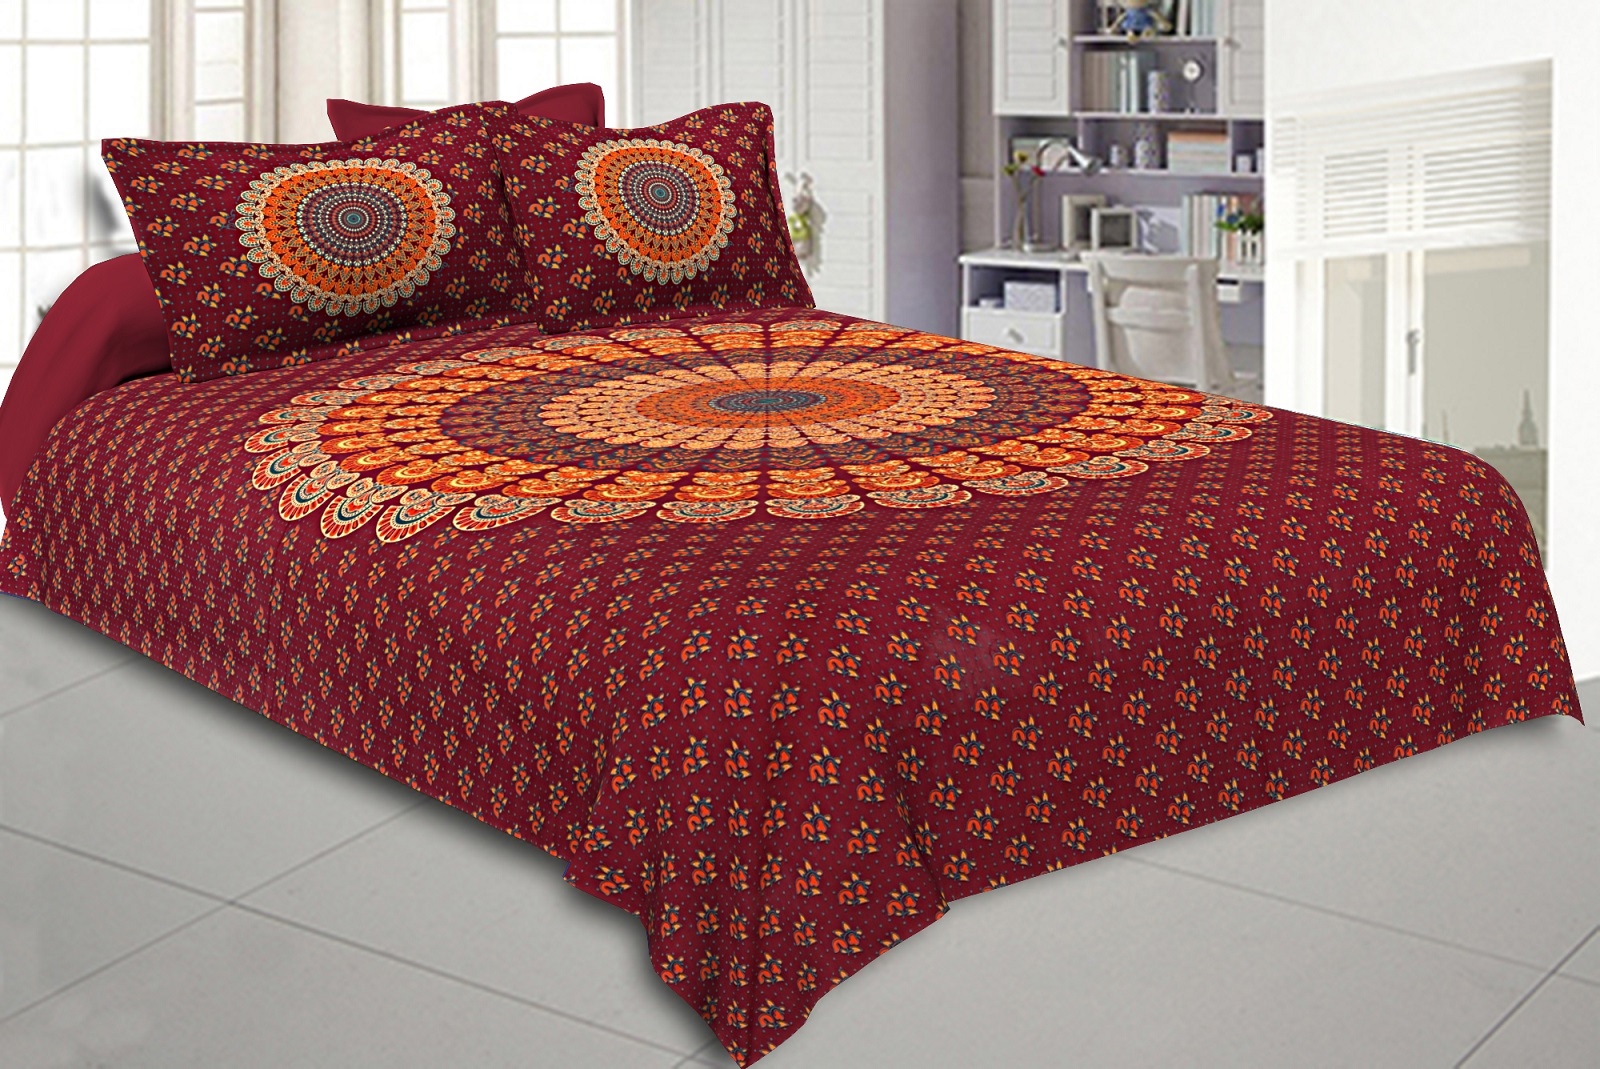 Crimson Red Mandala Bedsheet Tapestry Floral Print With 2 Pillow Covers